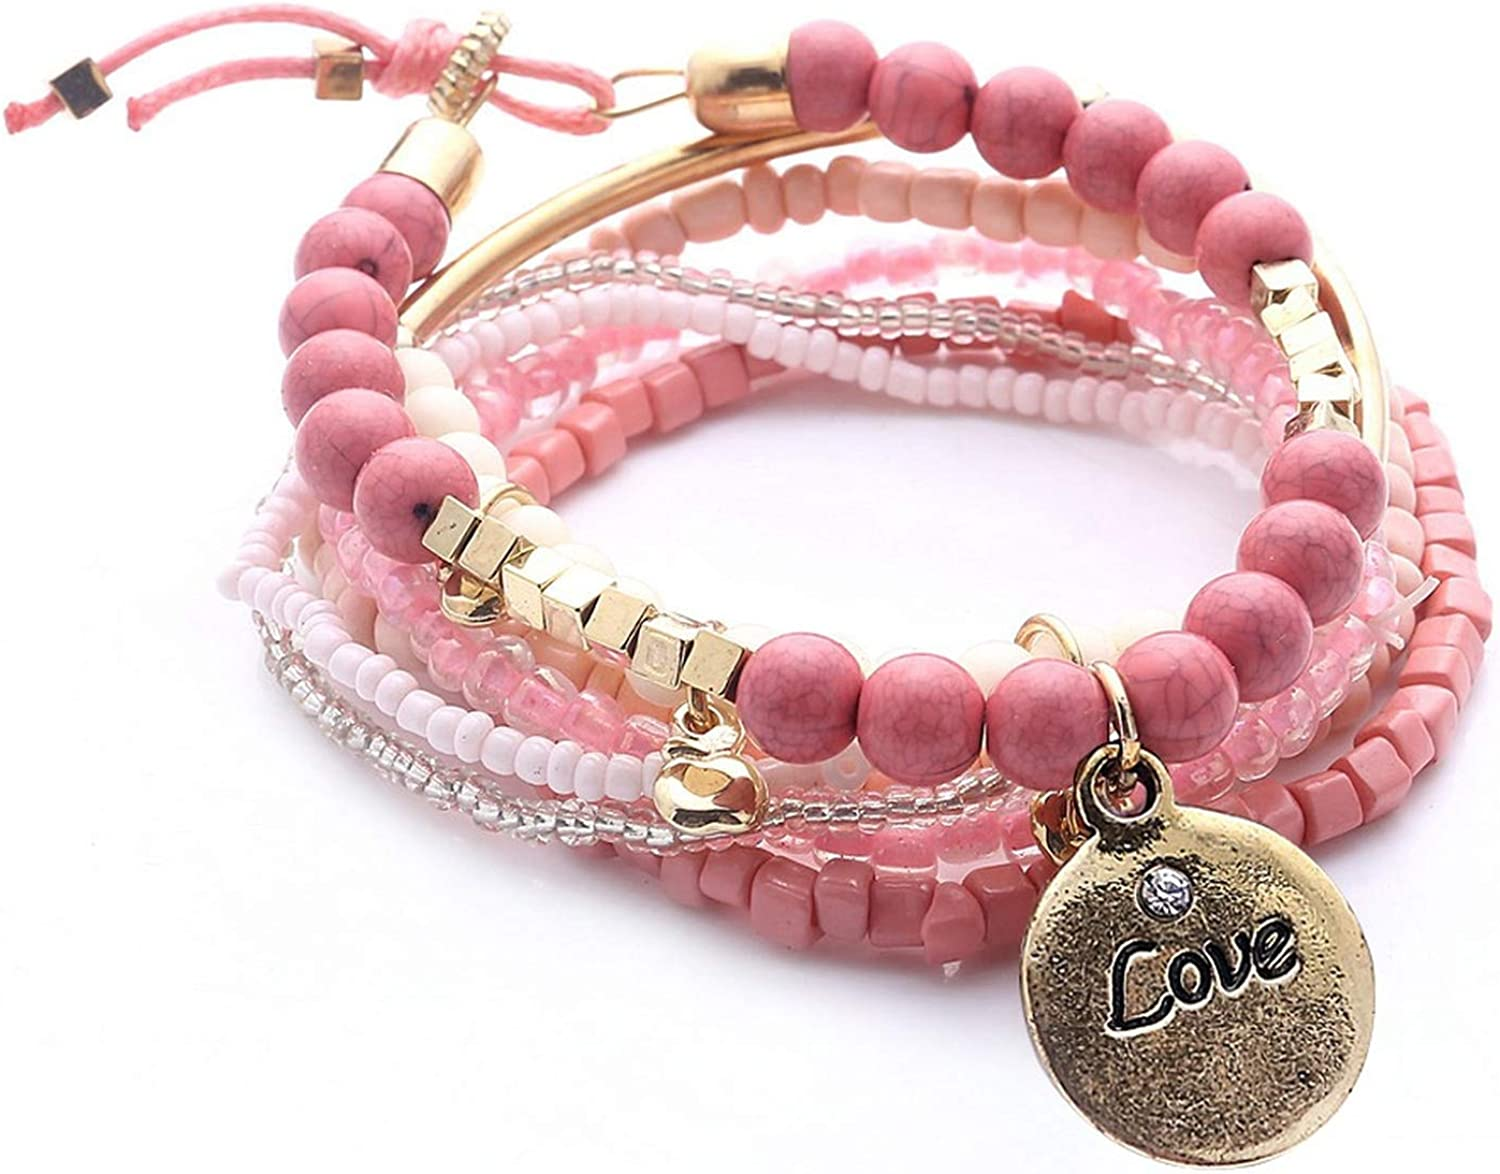 monicaexclusive Bohemia of Multilayer Elastic Weave Set Bracelets /& Bangles with Coin Charm Wrap Beads Bracelet